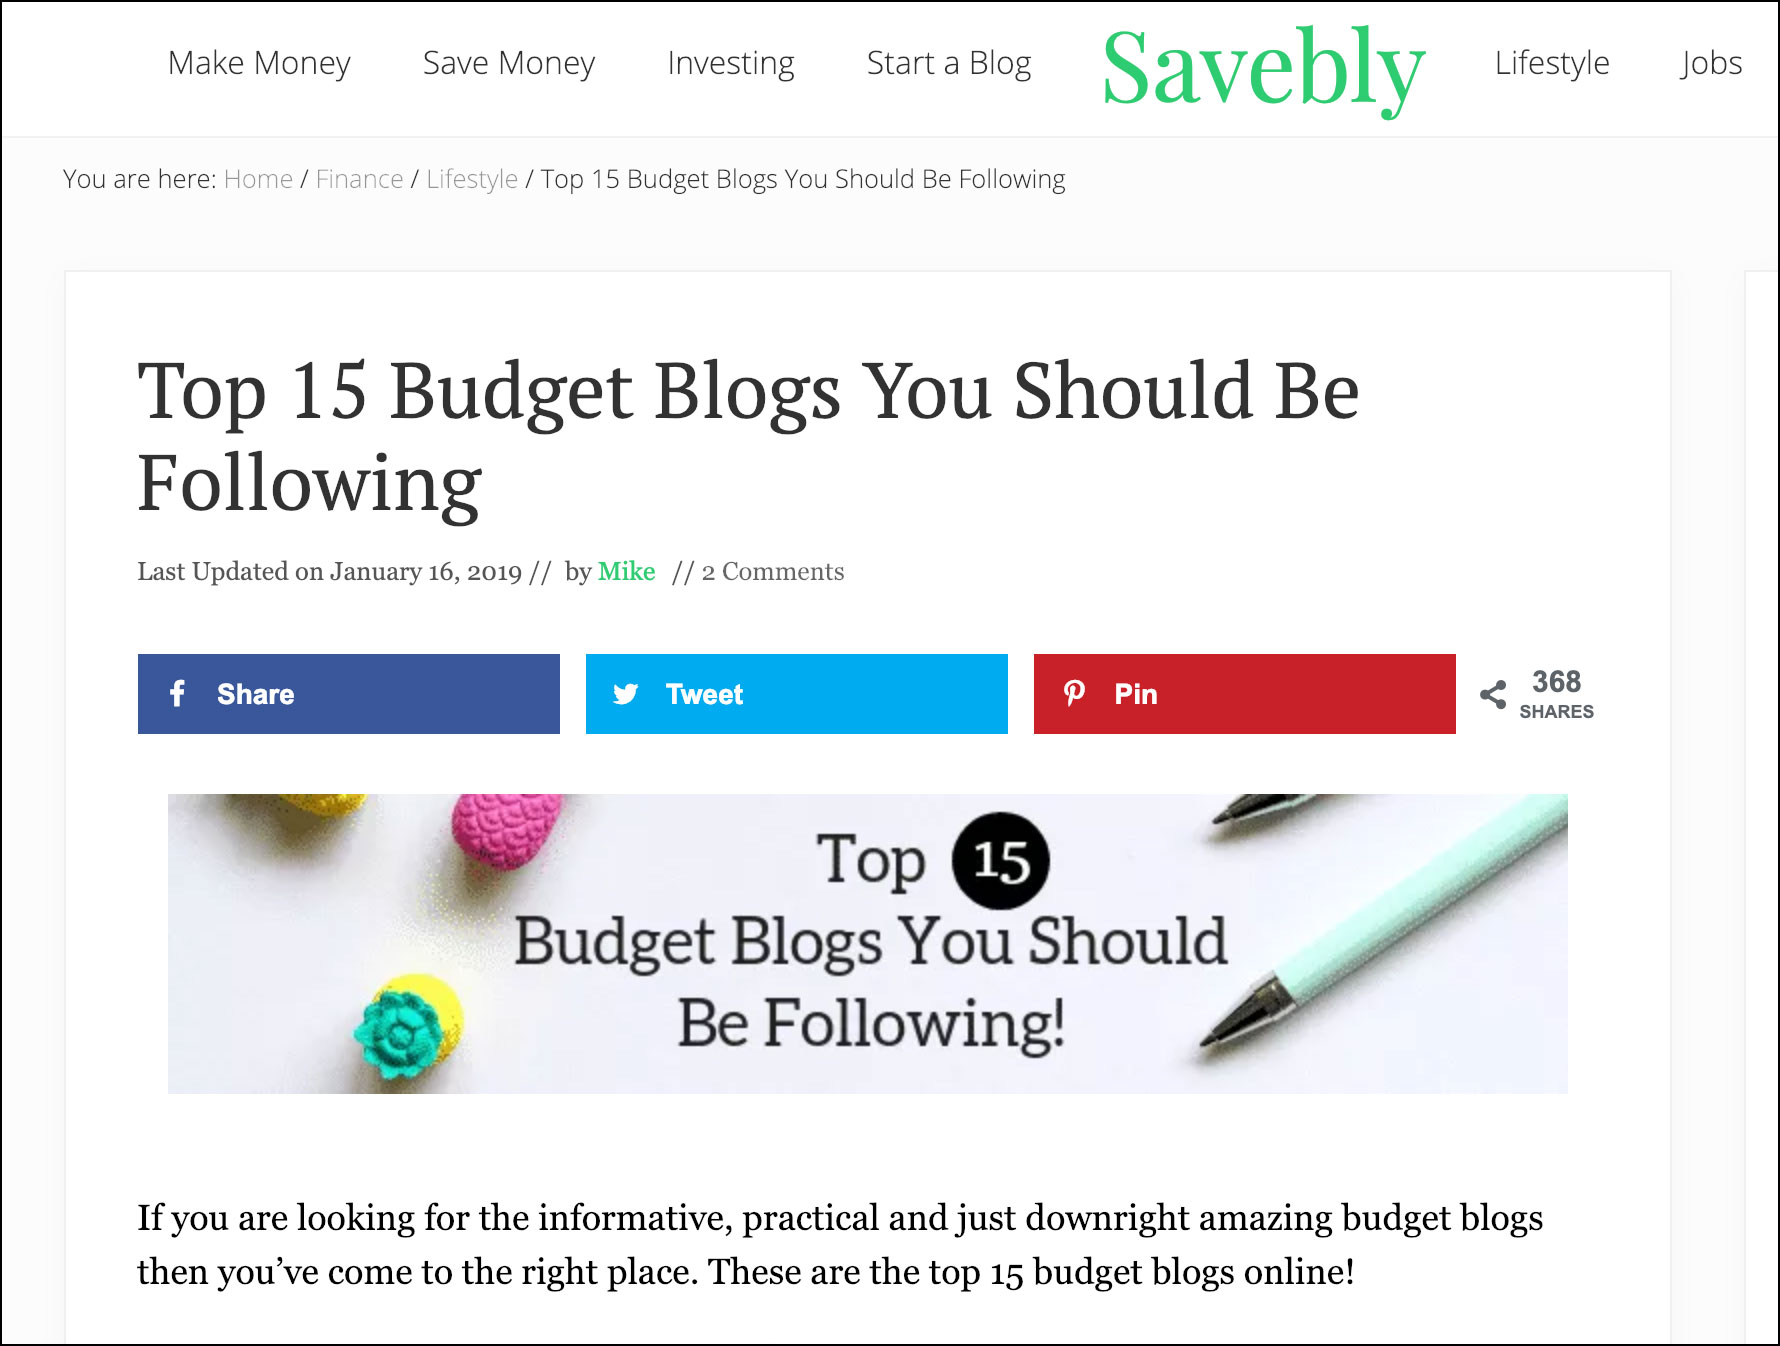 The Top 15 Budget Blogs You Should Be Following